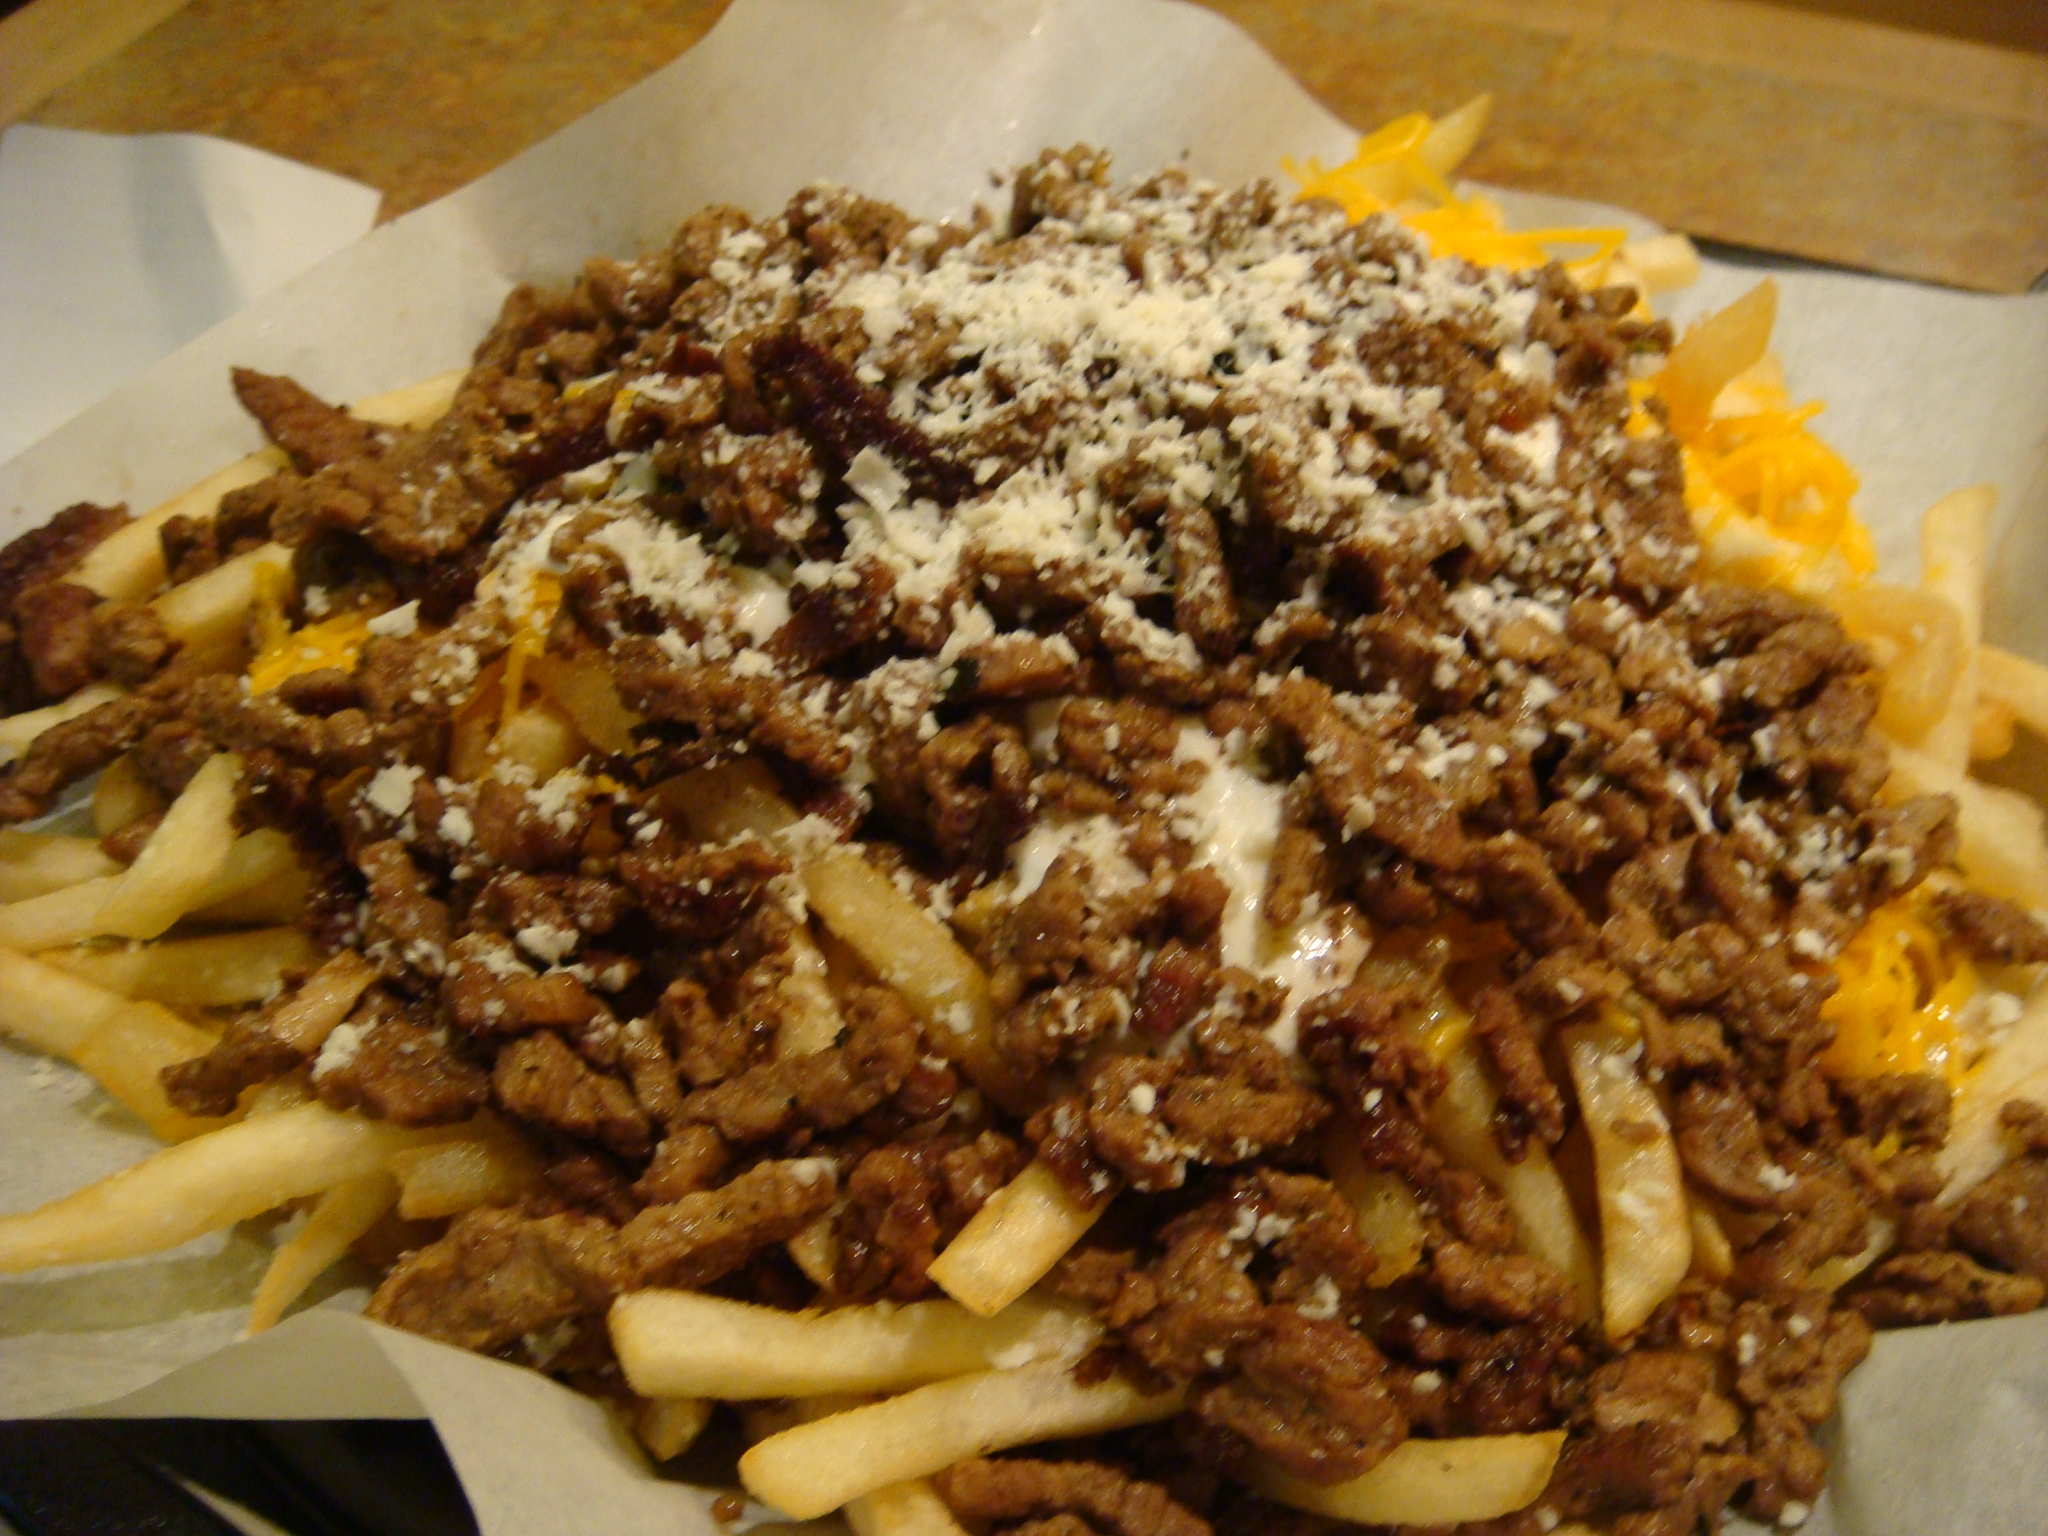 Carne asada fries sound really good right about now | IGN Boards